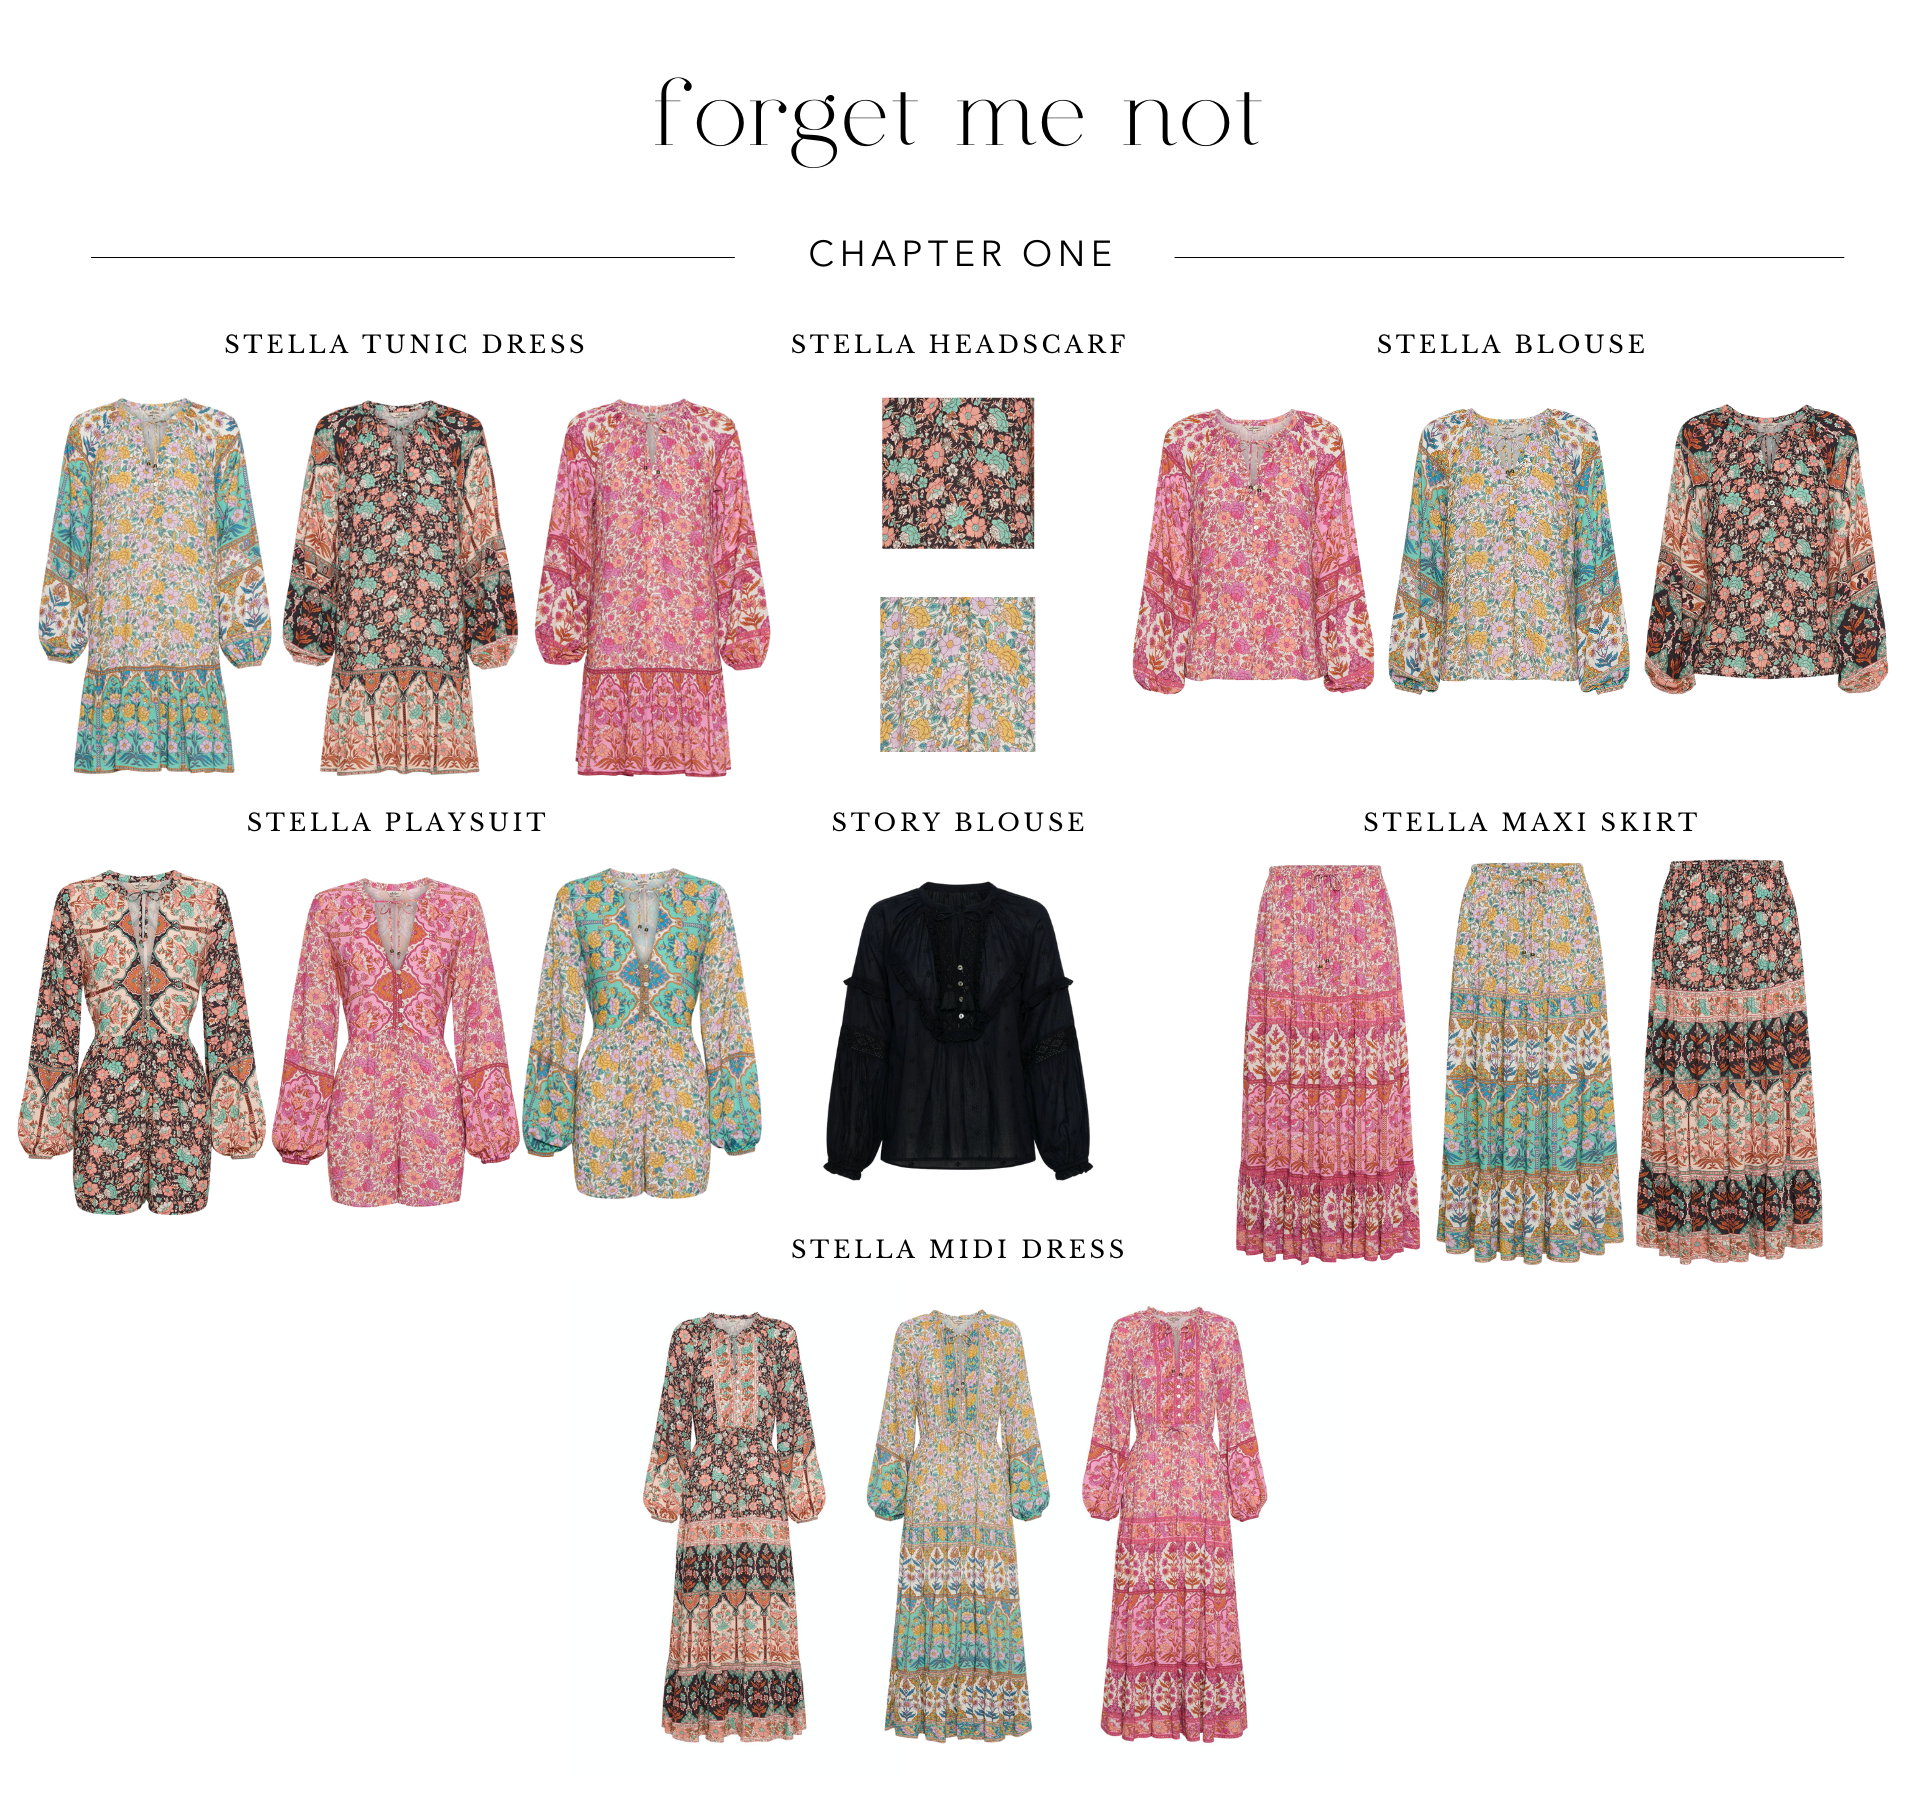 Shop chapter one of the sustainable fashion collection Forget Me Not